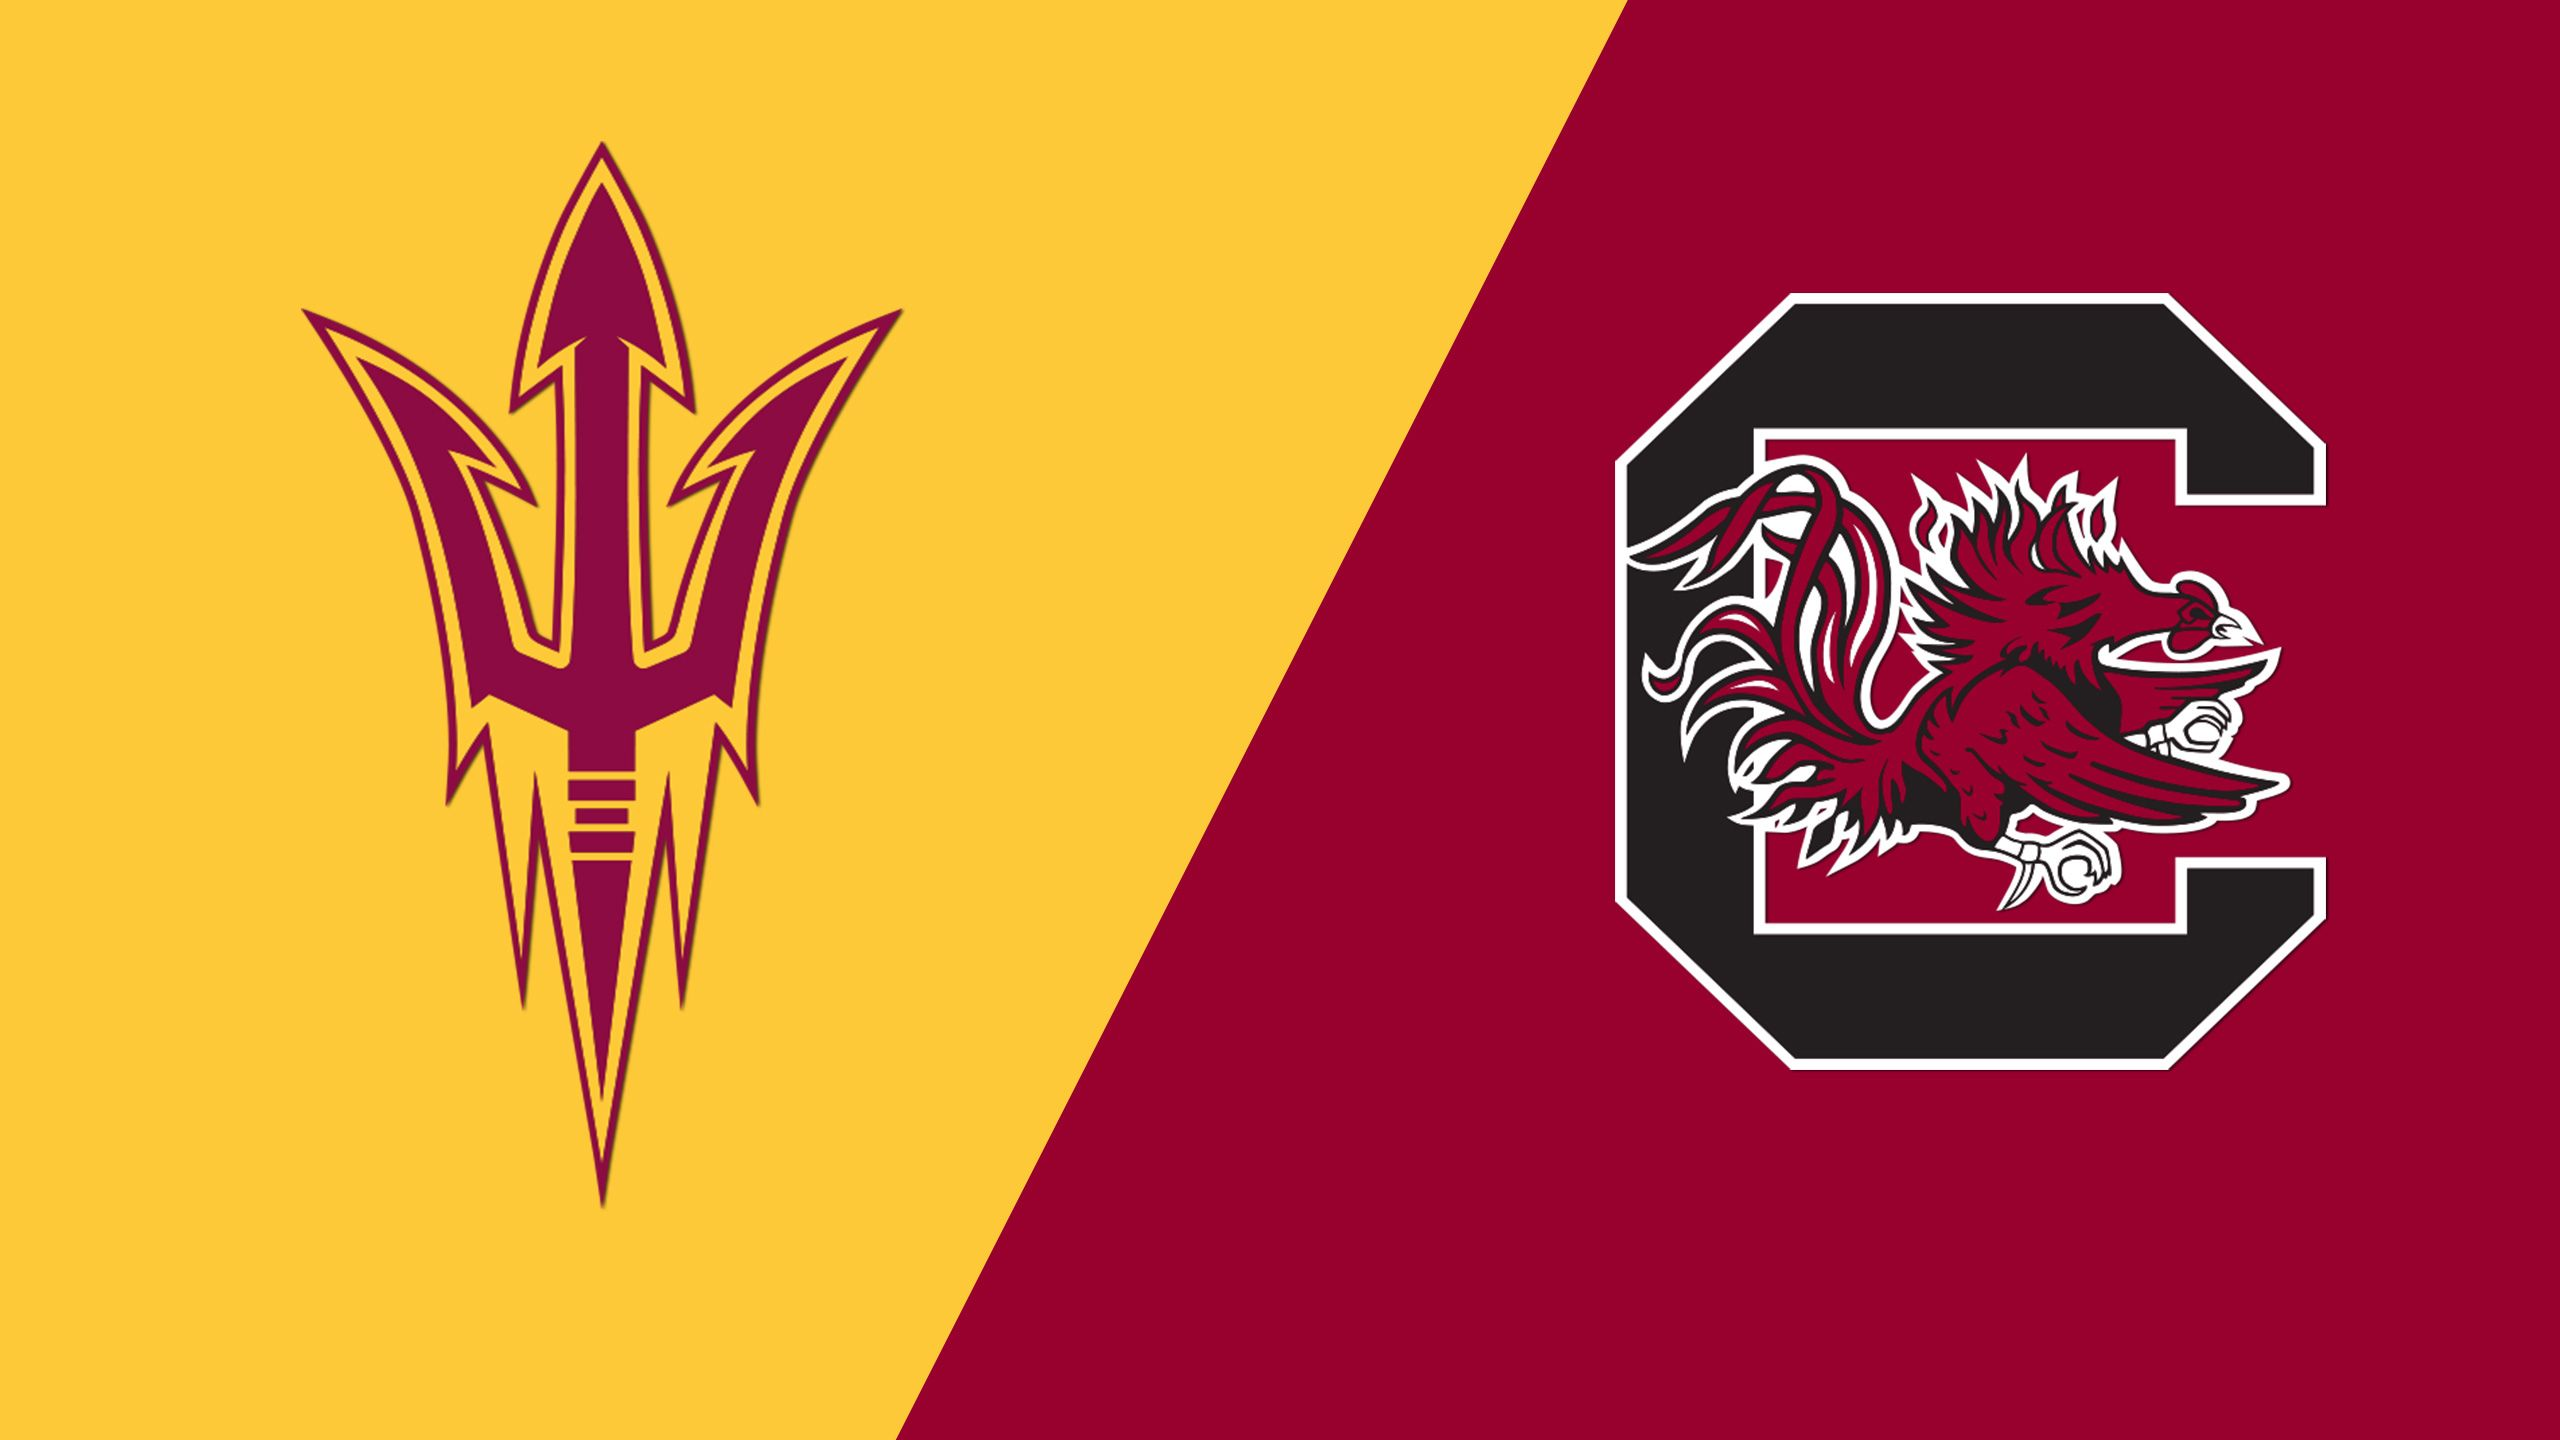 #8 Arizona State vs. #9 South Carolina (Site 8 / Game 2) (NCAA Softball Championship)